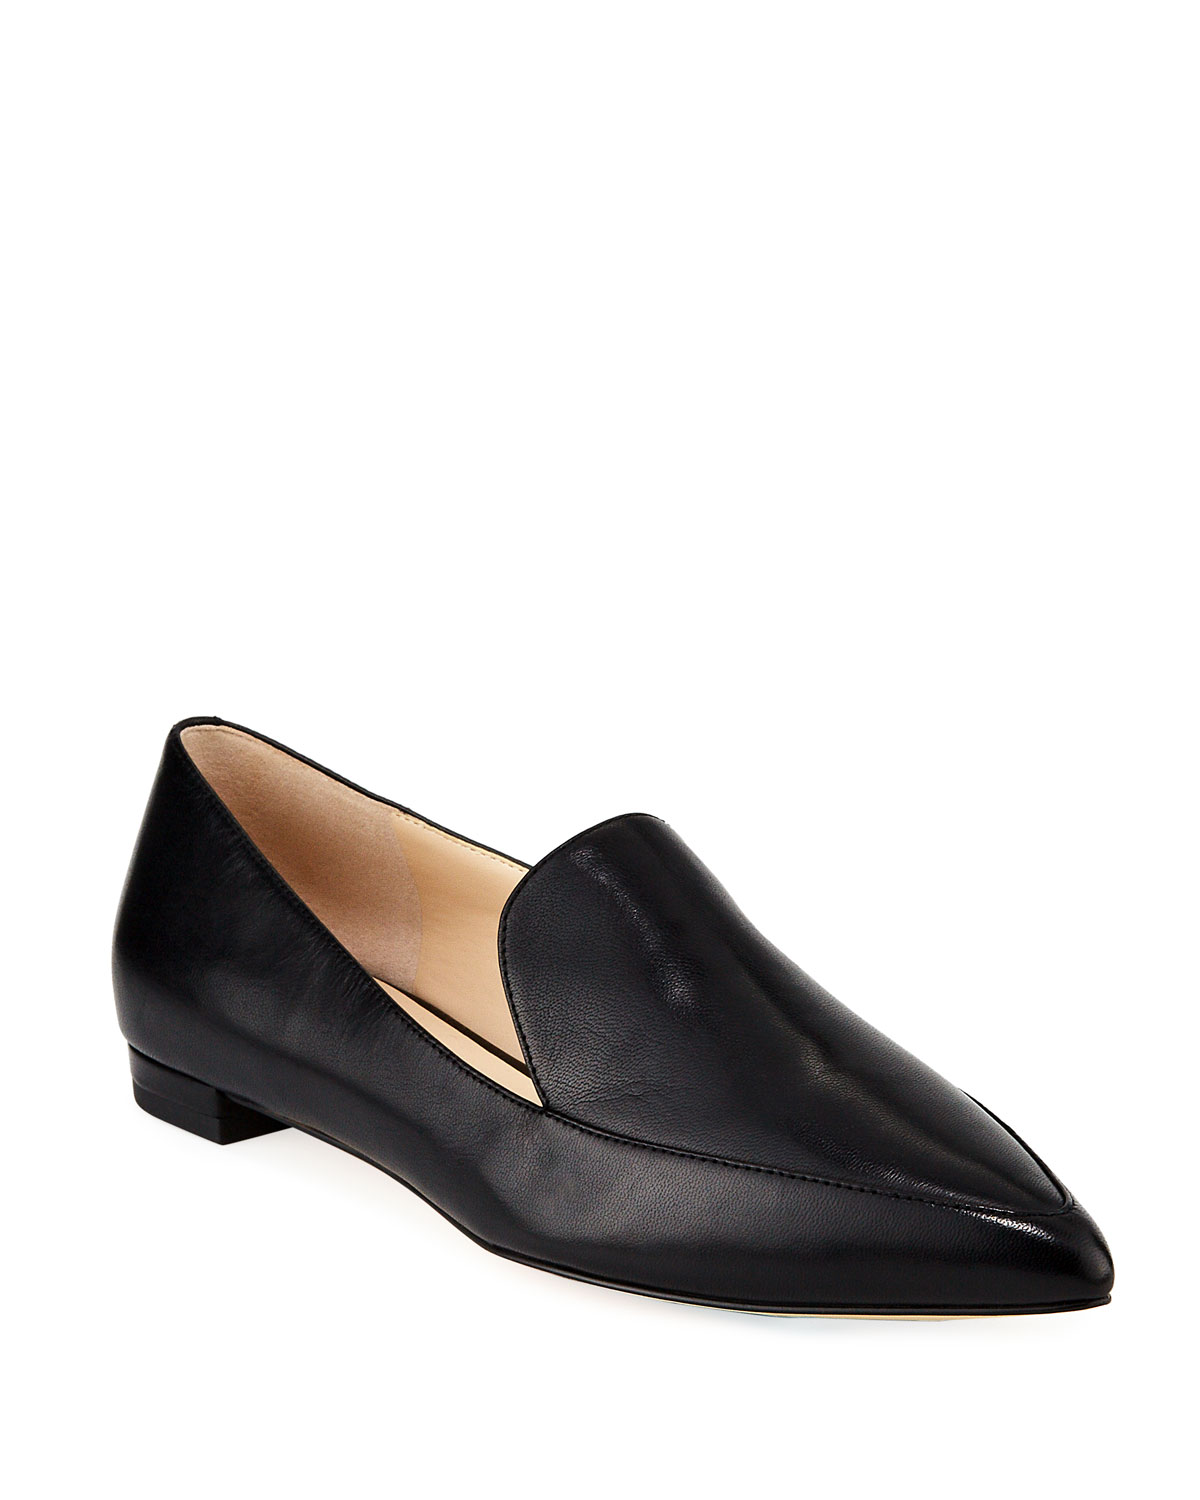 Brie Grand Smooth Leather Flats